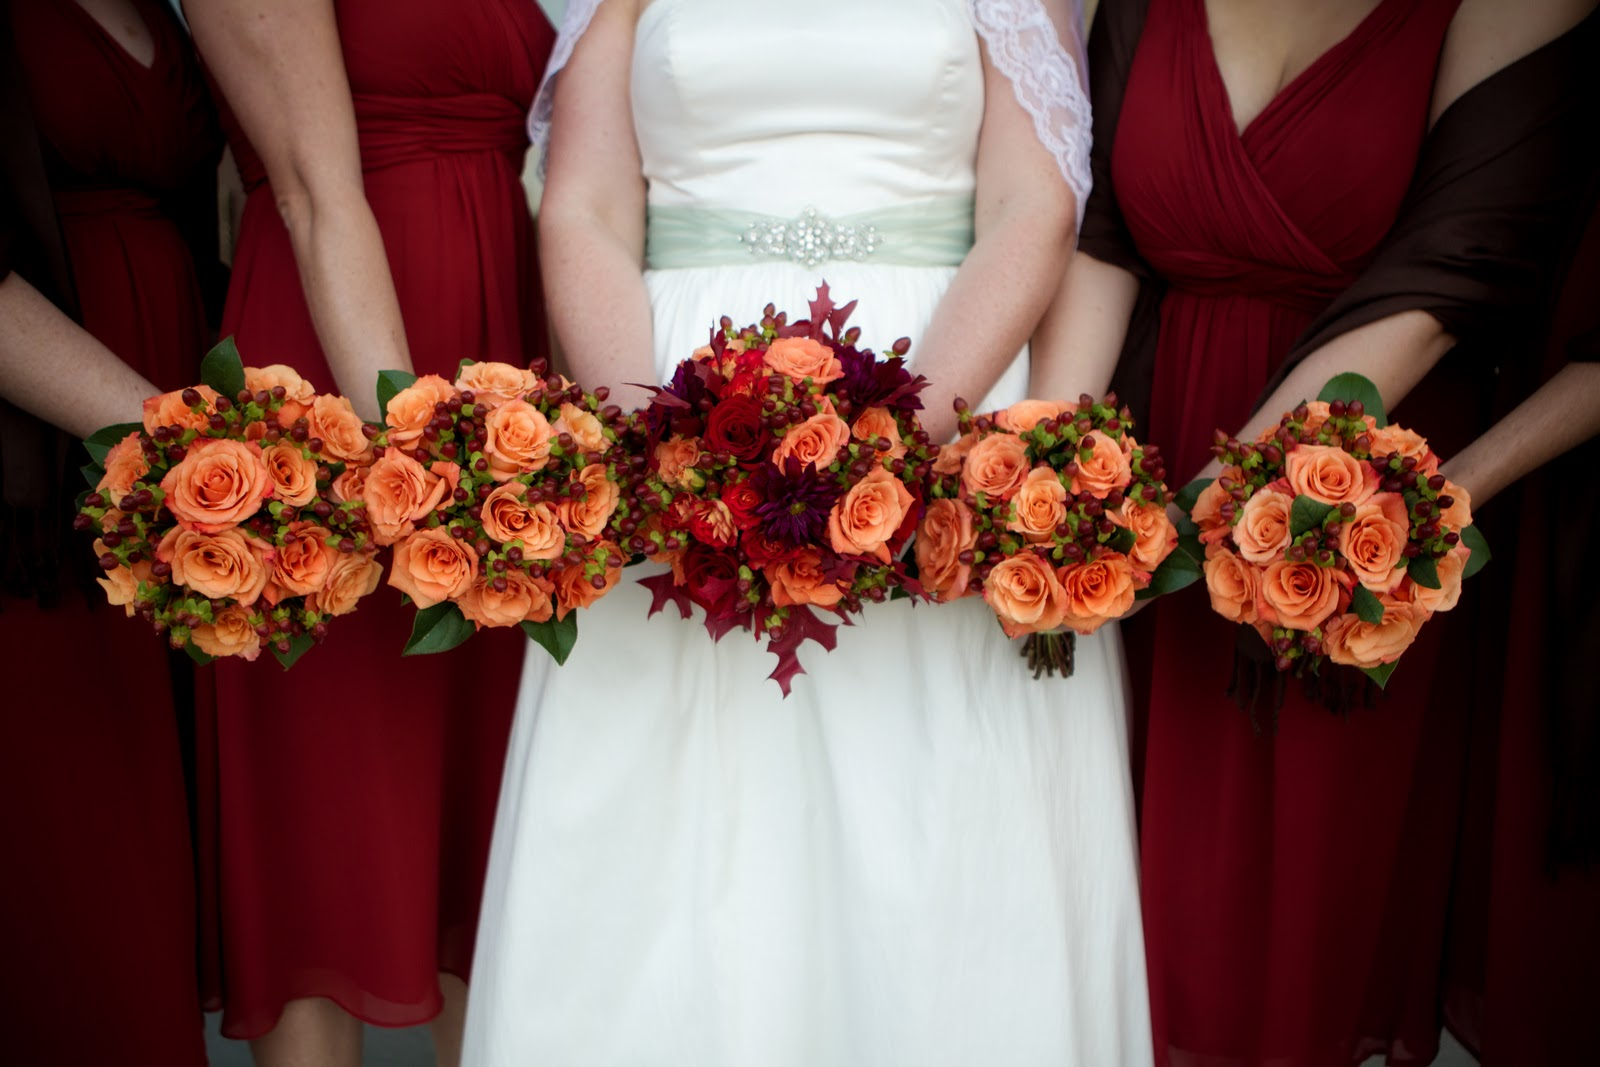 Cutting Wedding Costs - Tacky Or Smart?